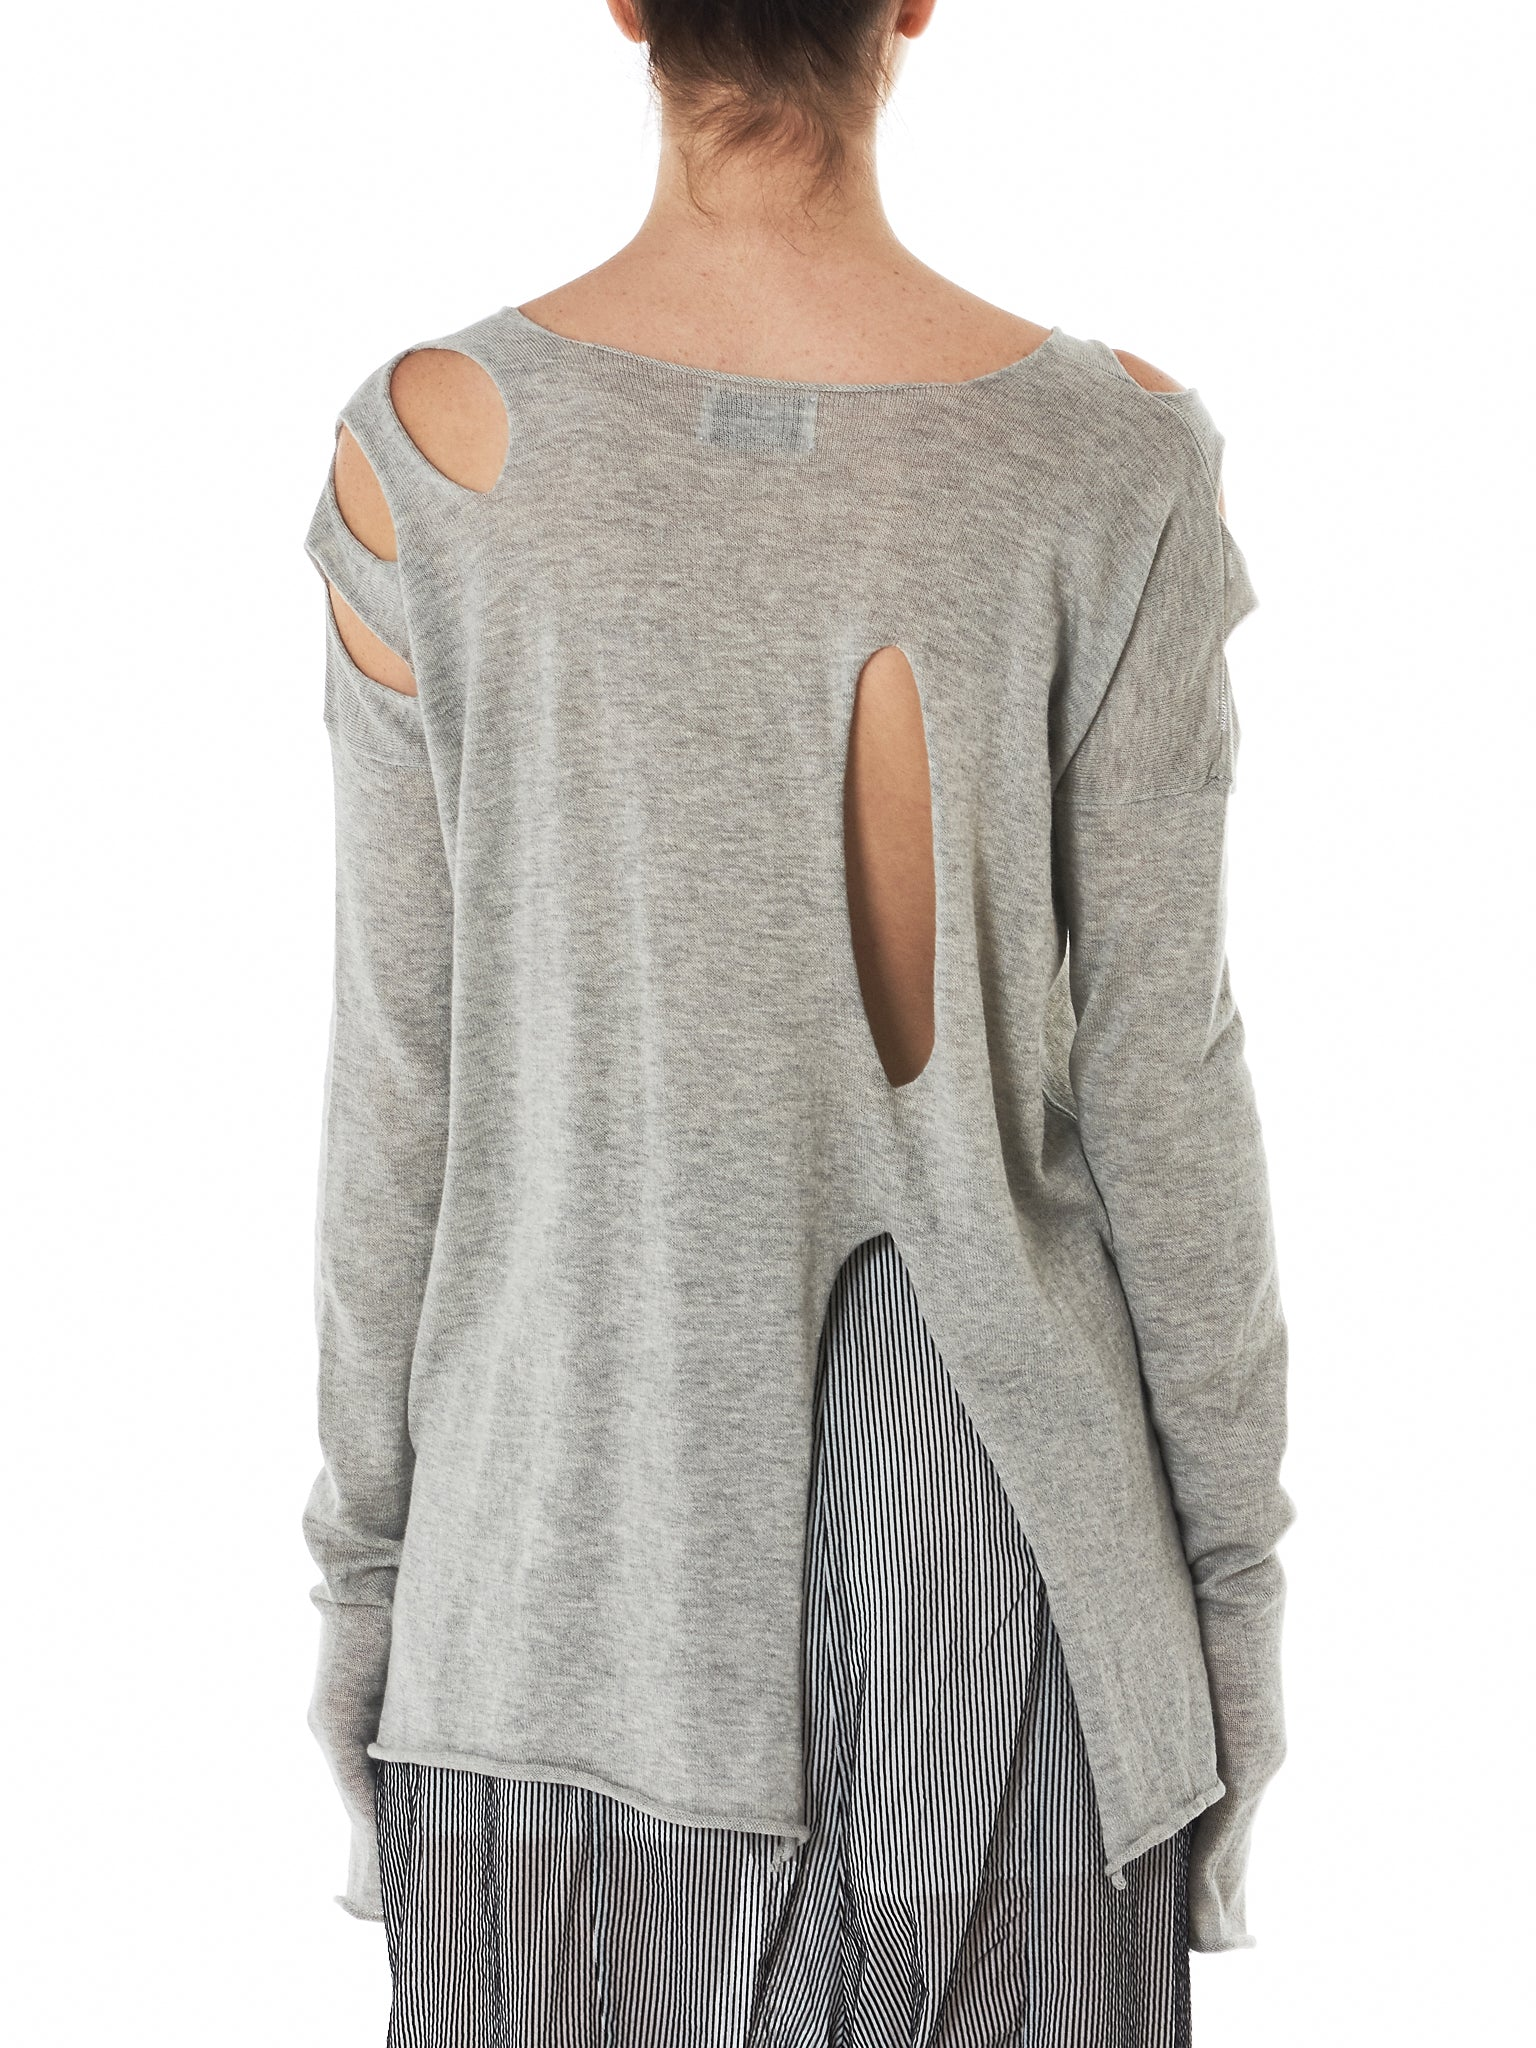 Lost & Found Slashed Sweater - Hlorenzo Back